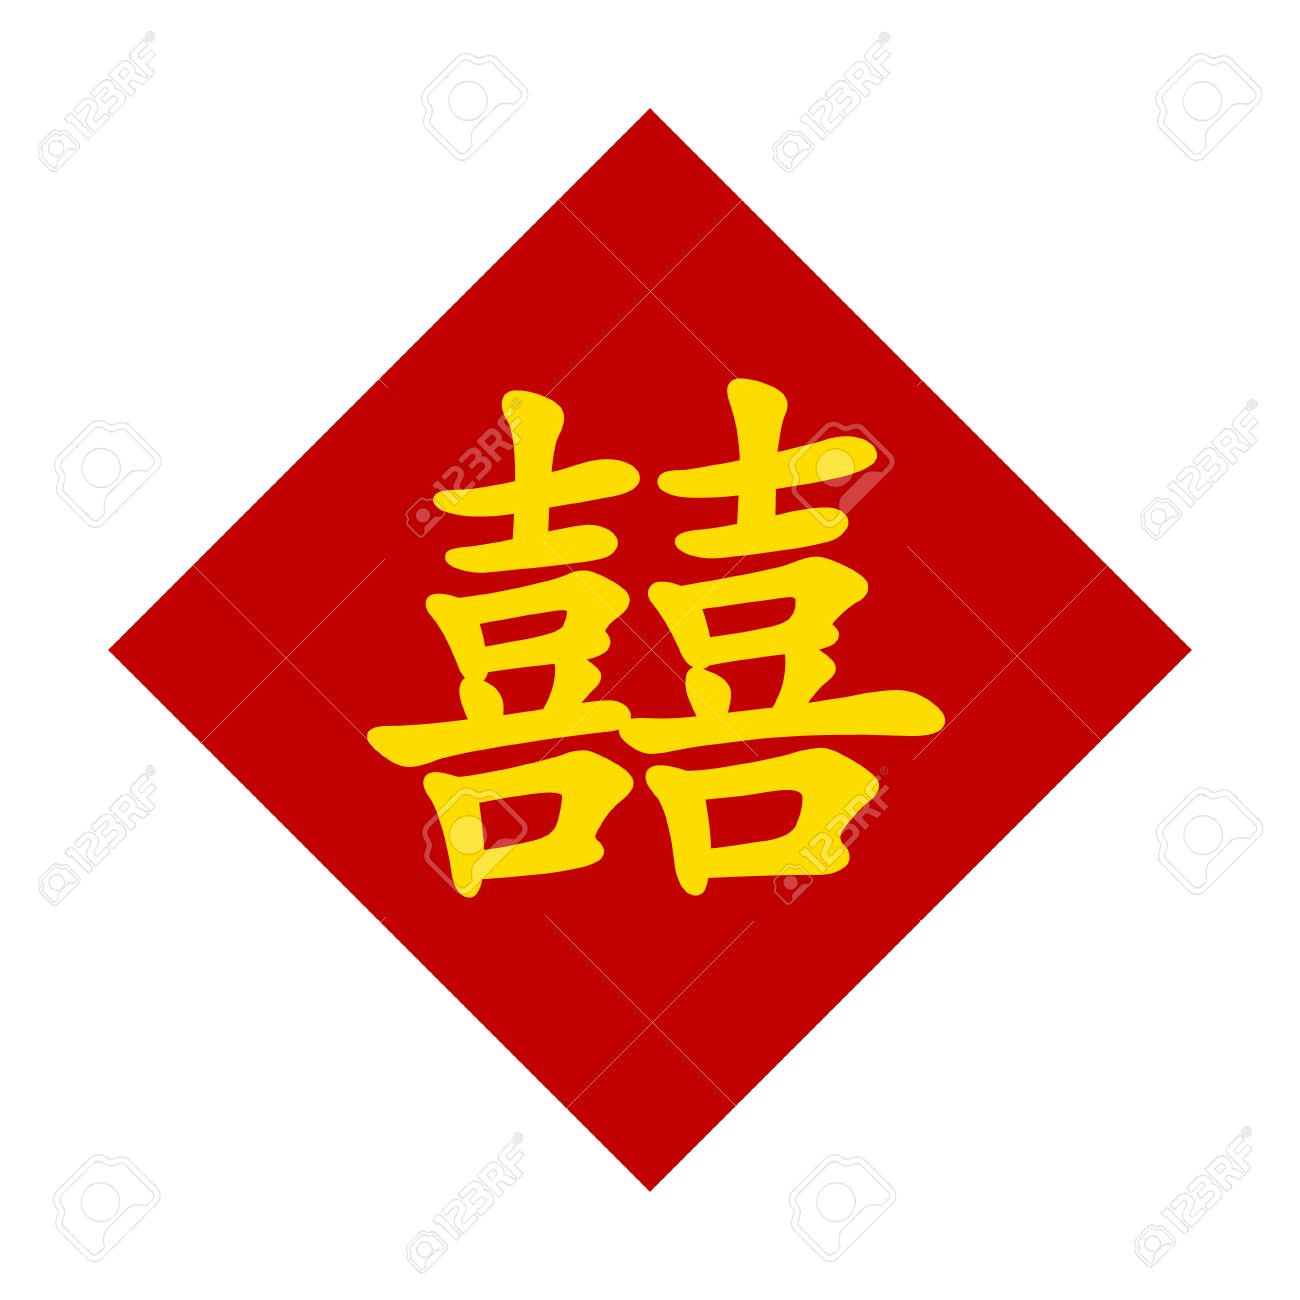 Display Sign With The Chinese Character 'Double Happiness